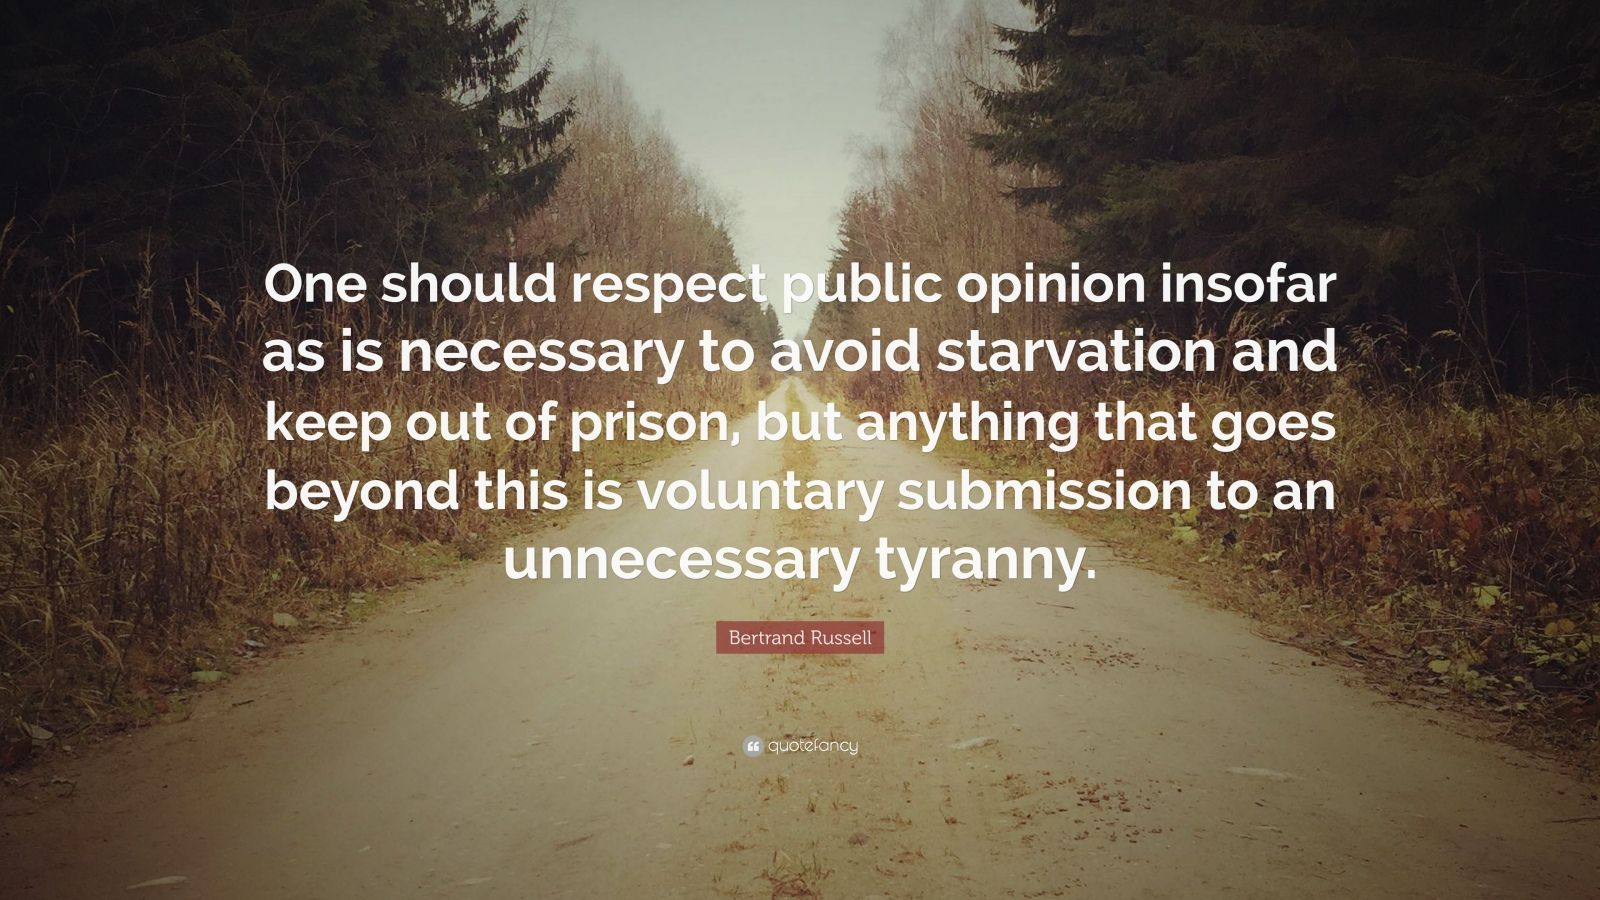 """Bertrand Russell Quote: """"One should respect public opinion insofar as is necessary to avoid starvation and keep out of prison, but anything that goes beyond this is voluntary submission to an unnecessary tyranny."""""""